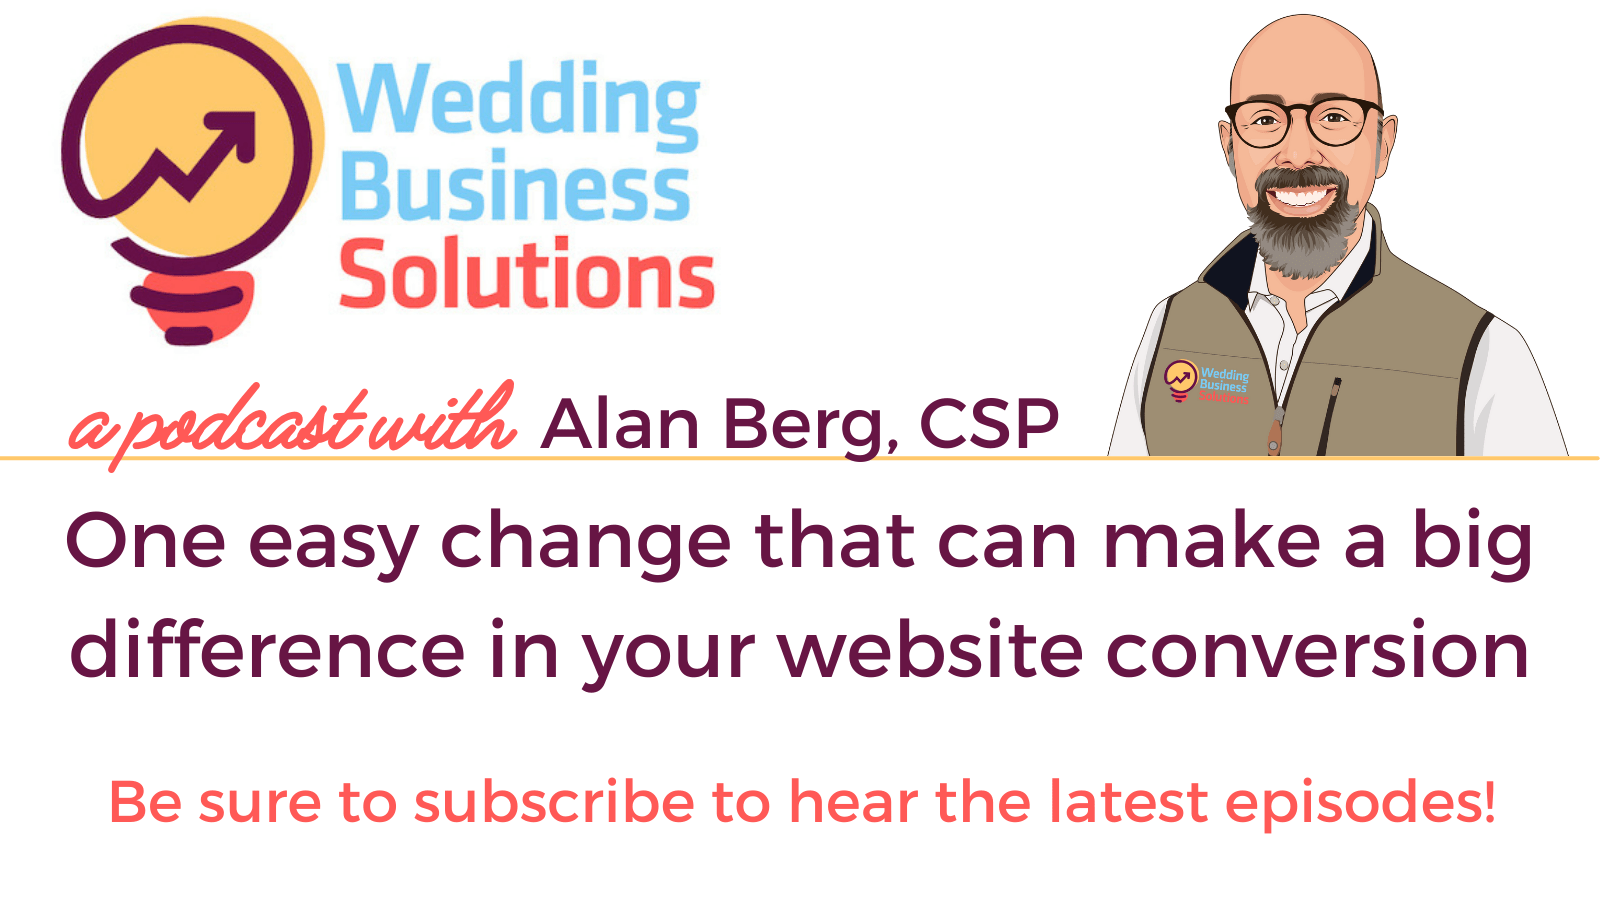 One easy change that can make a big difference in your website conversion